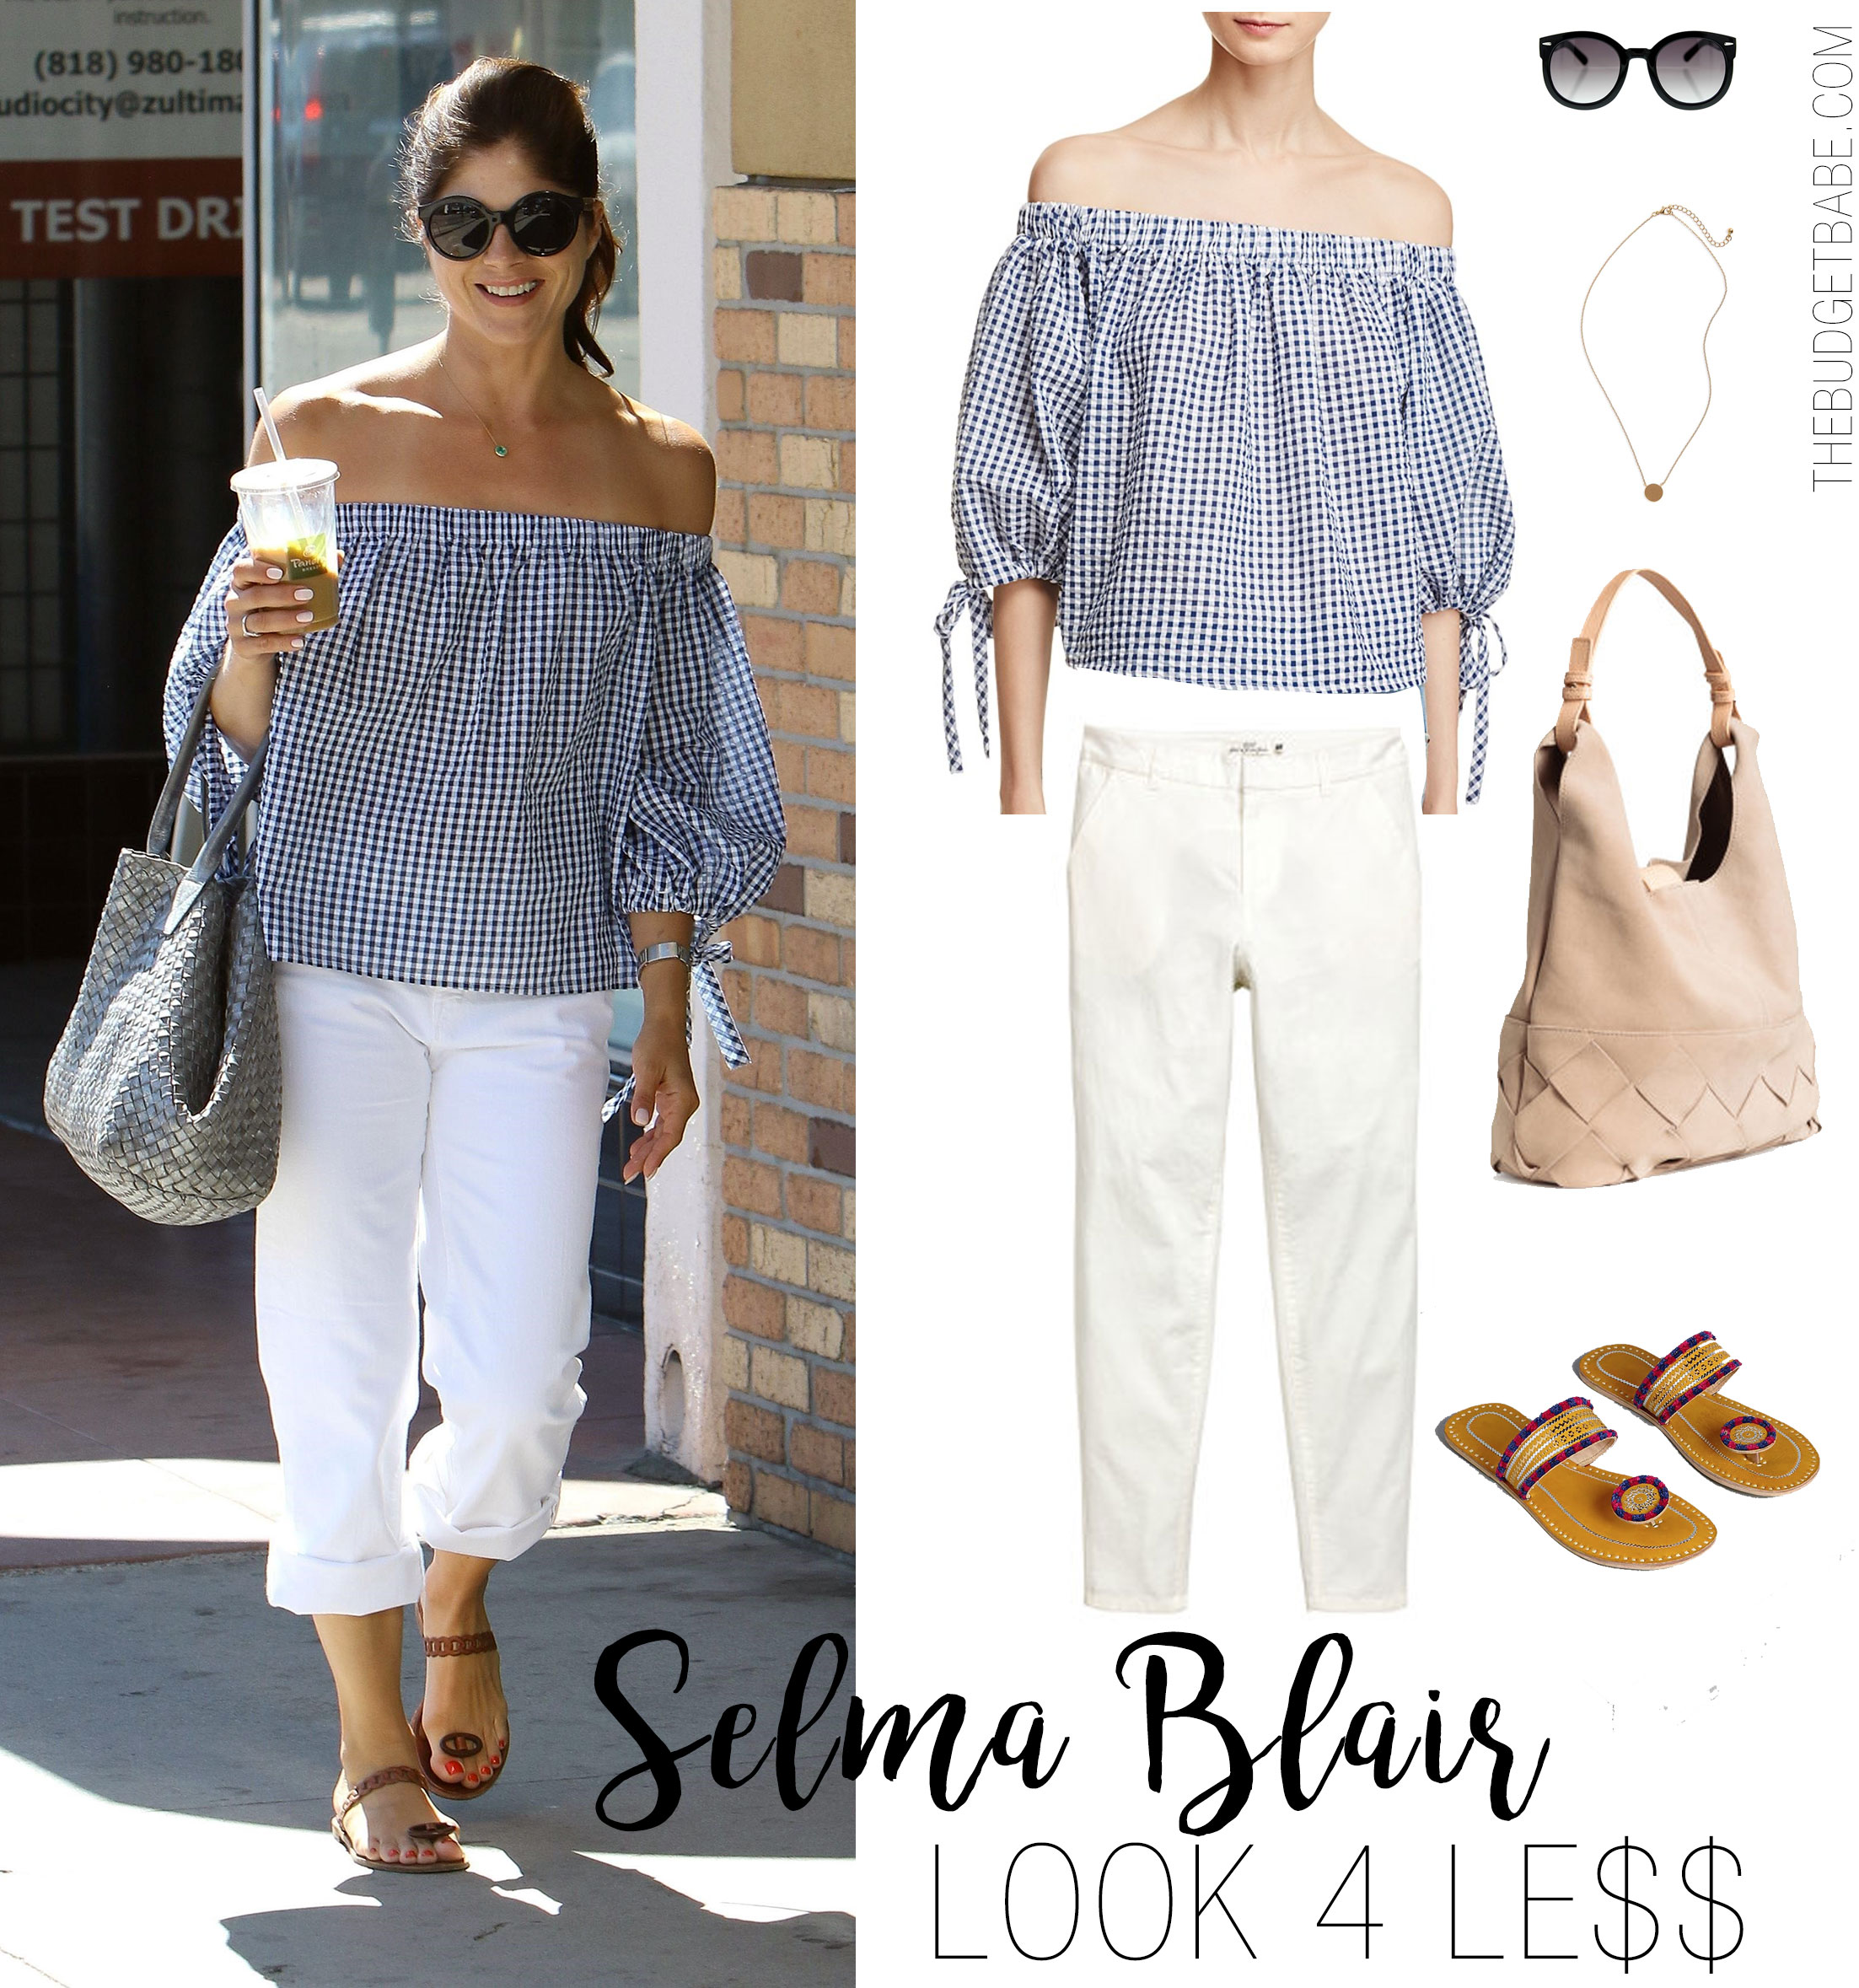 Selma Blair wears a gingham off-the-shoulder top and white pants for summer.